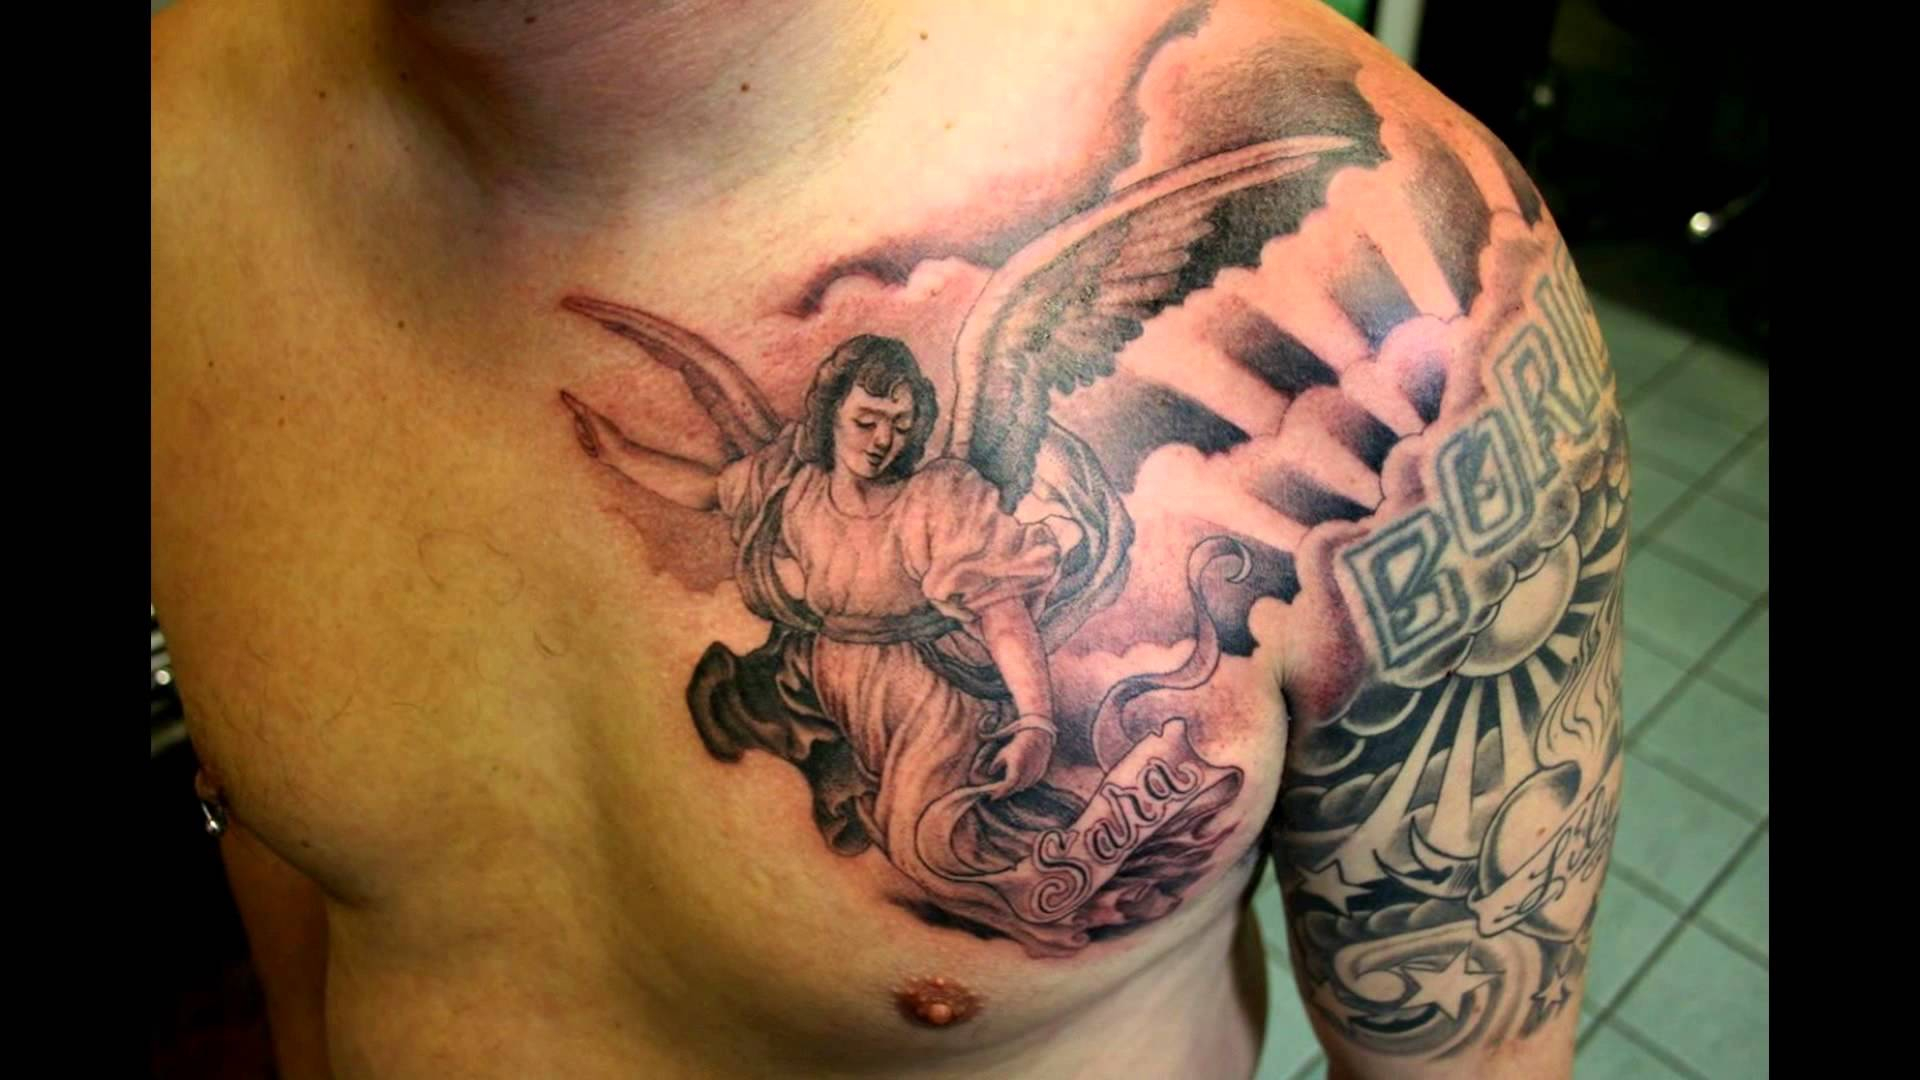 Black And Grey Ink Guardian Angel Tattoo On Chest For Men within measurements 1920 X 1080